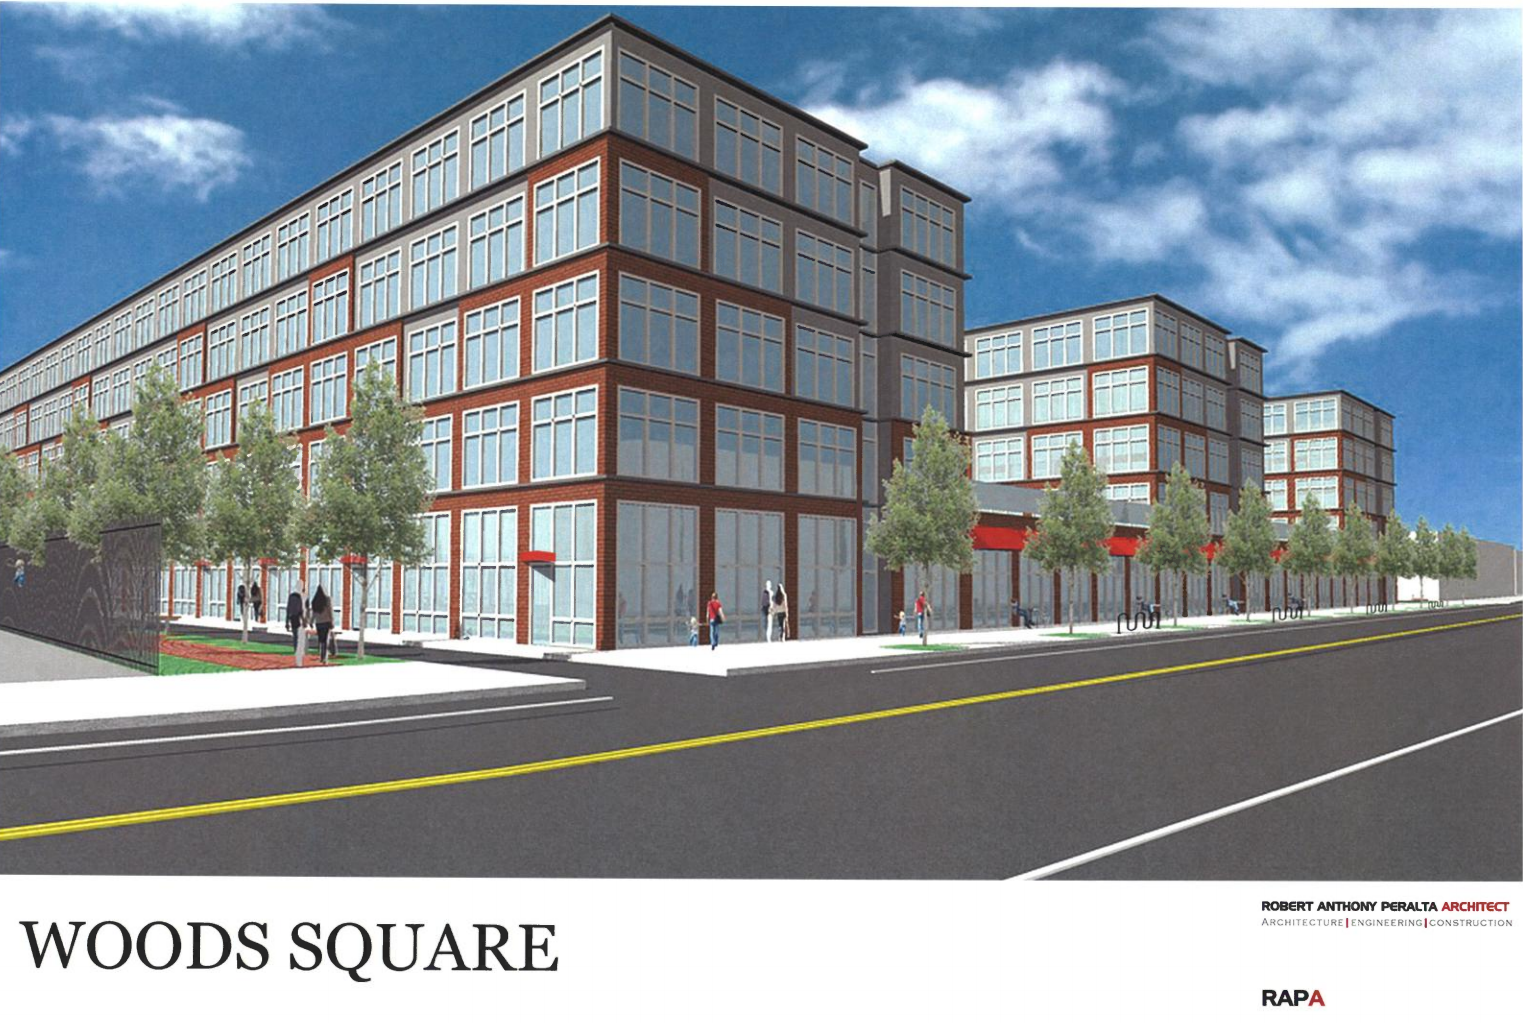 Woods Square rendering, August 2016 CDR presentation